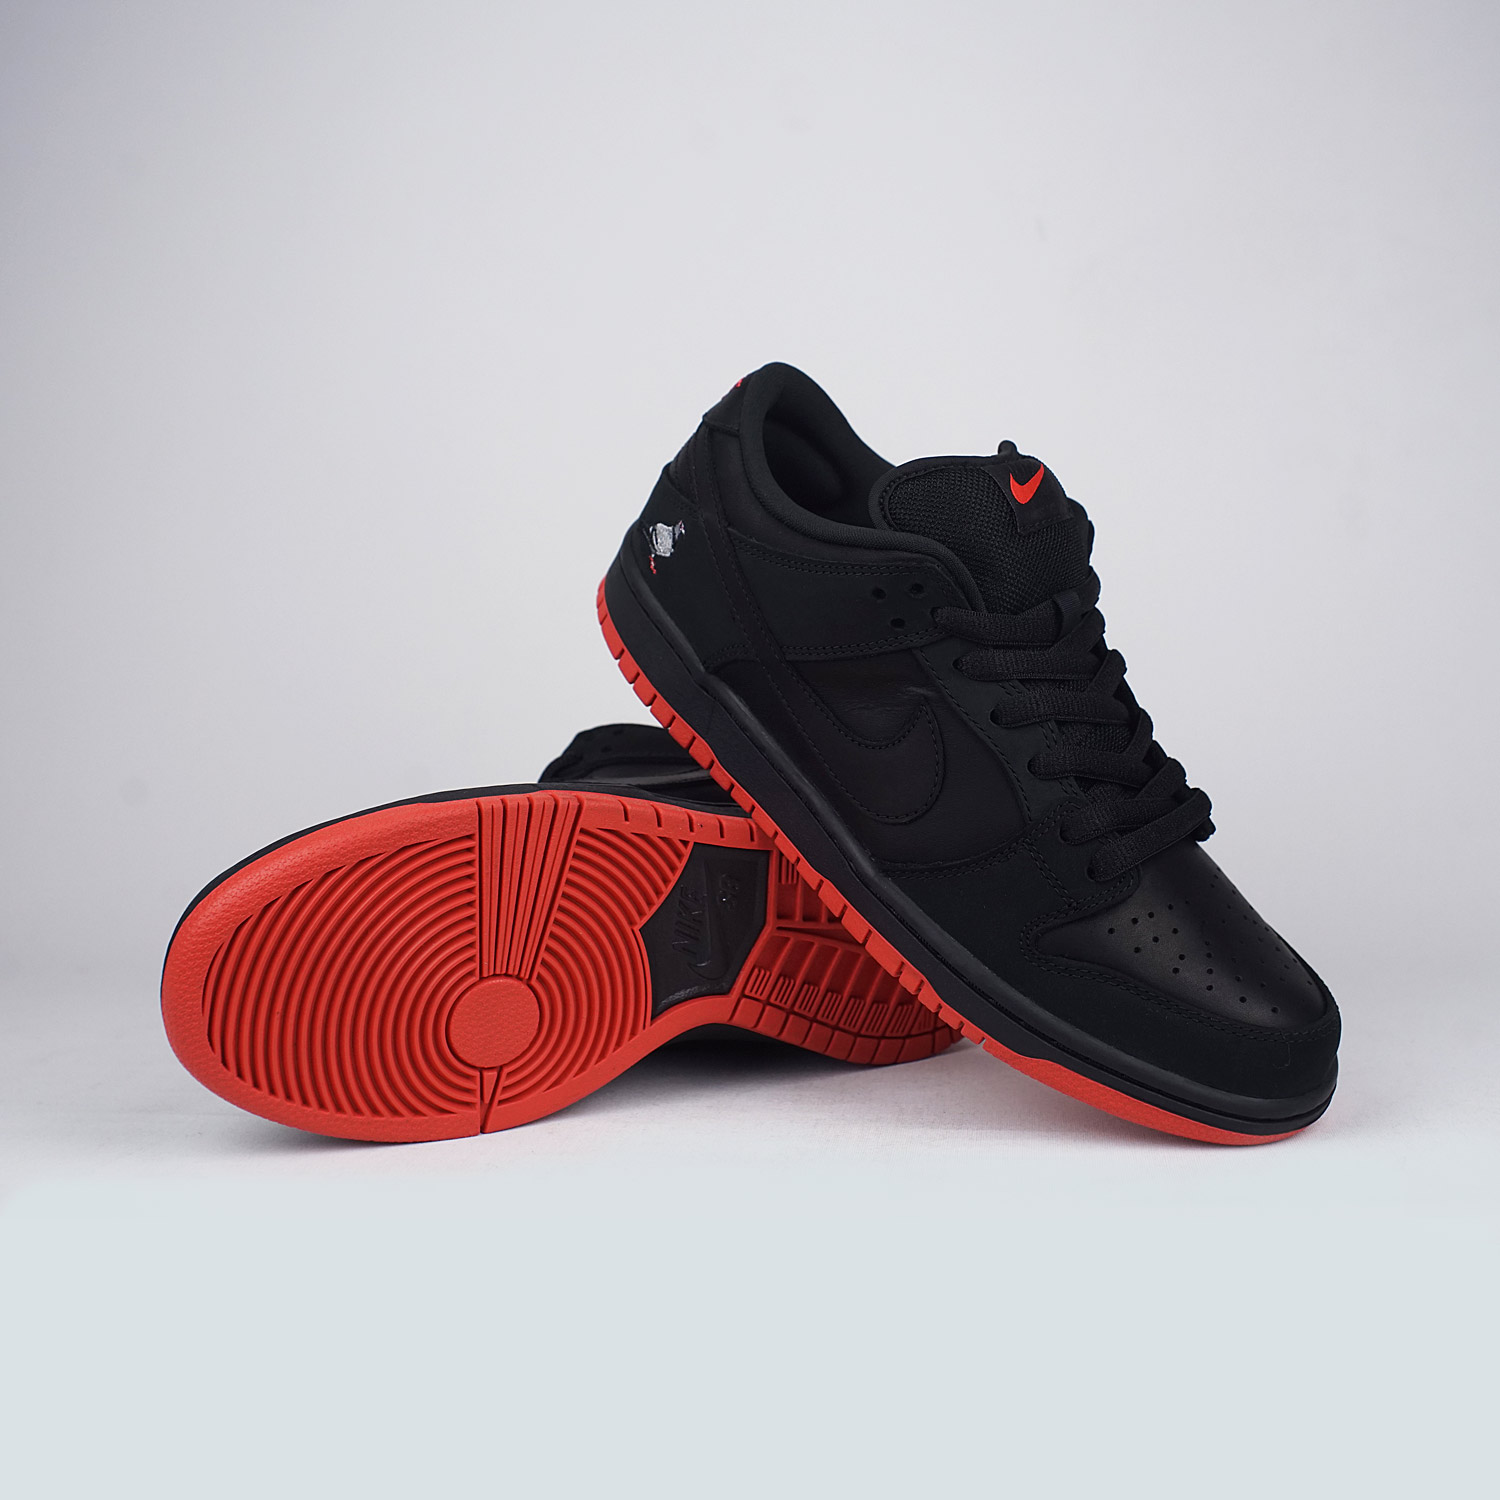 new style 433ae 107c5 Nike-SB-Staple-Quickstrike-Pigeon-Dunk-Black-Black ...